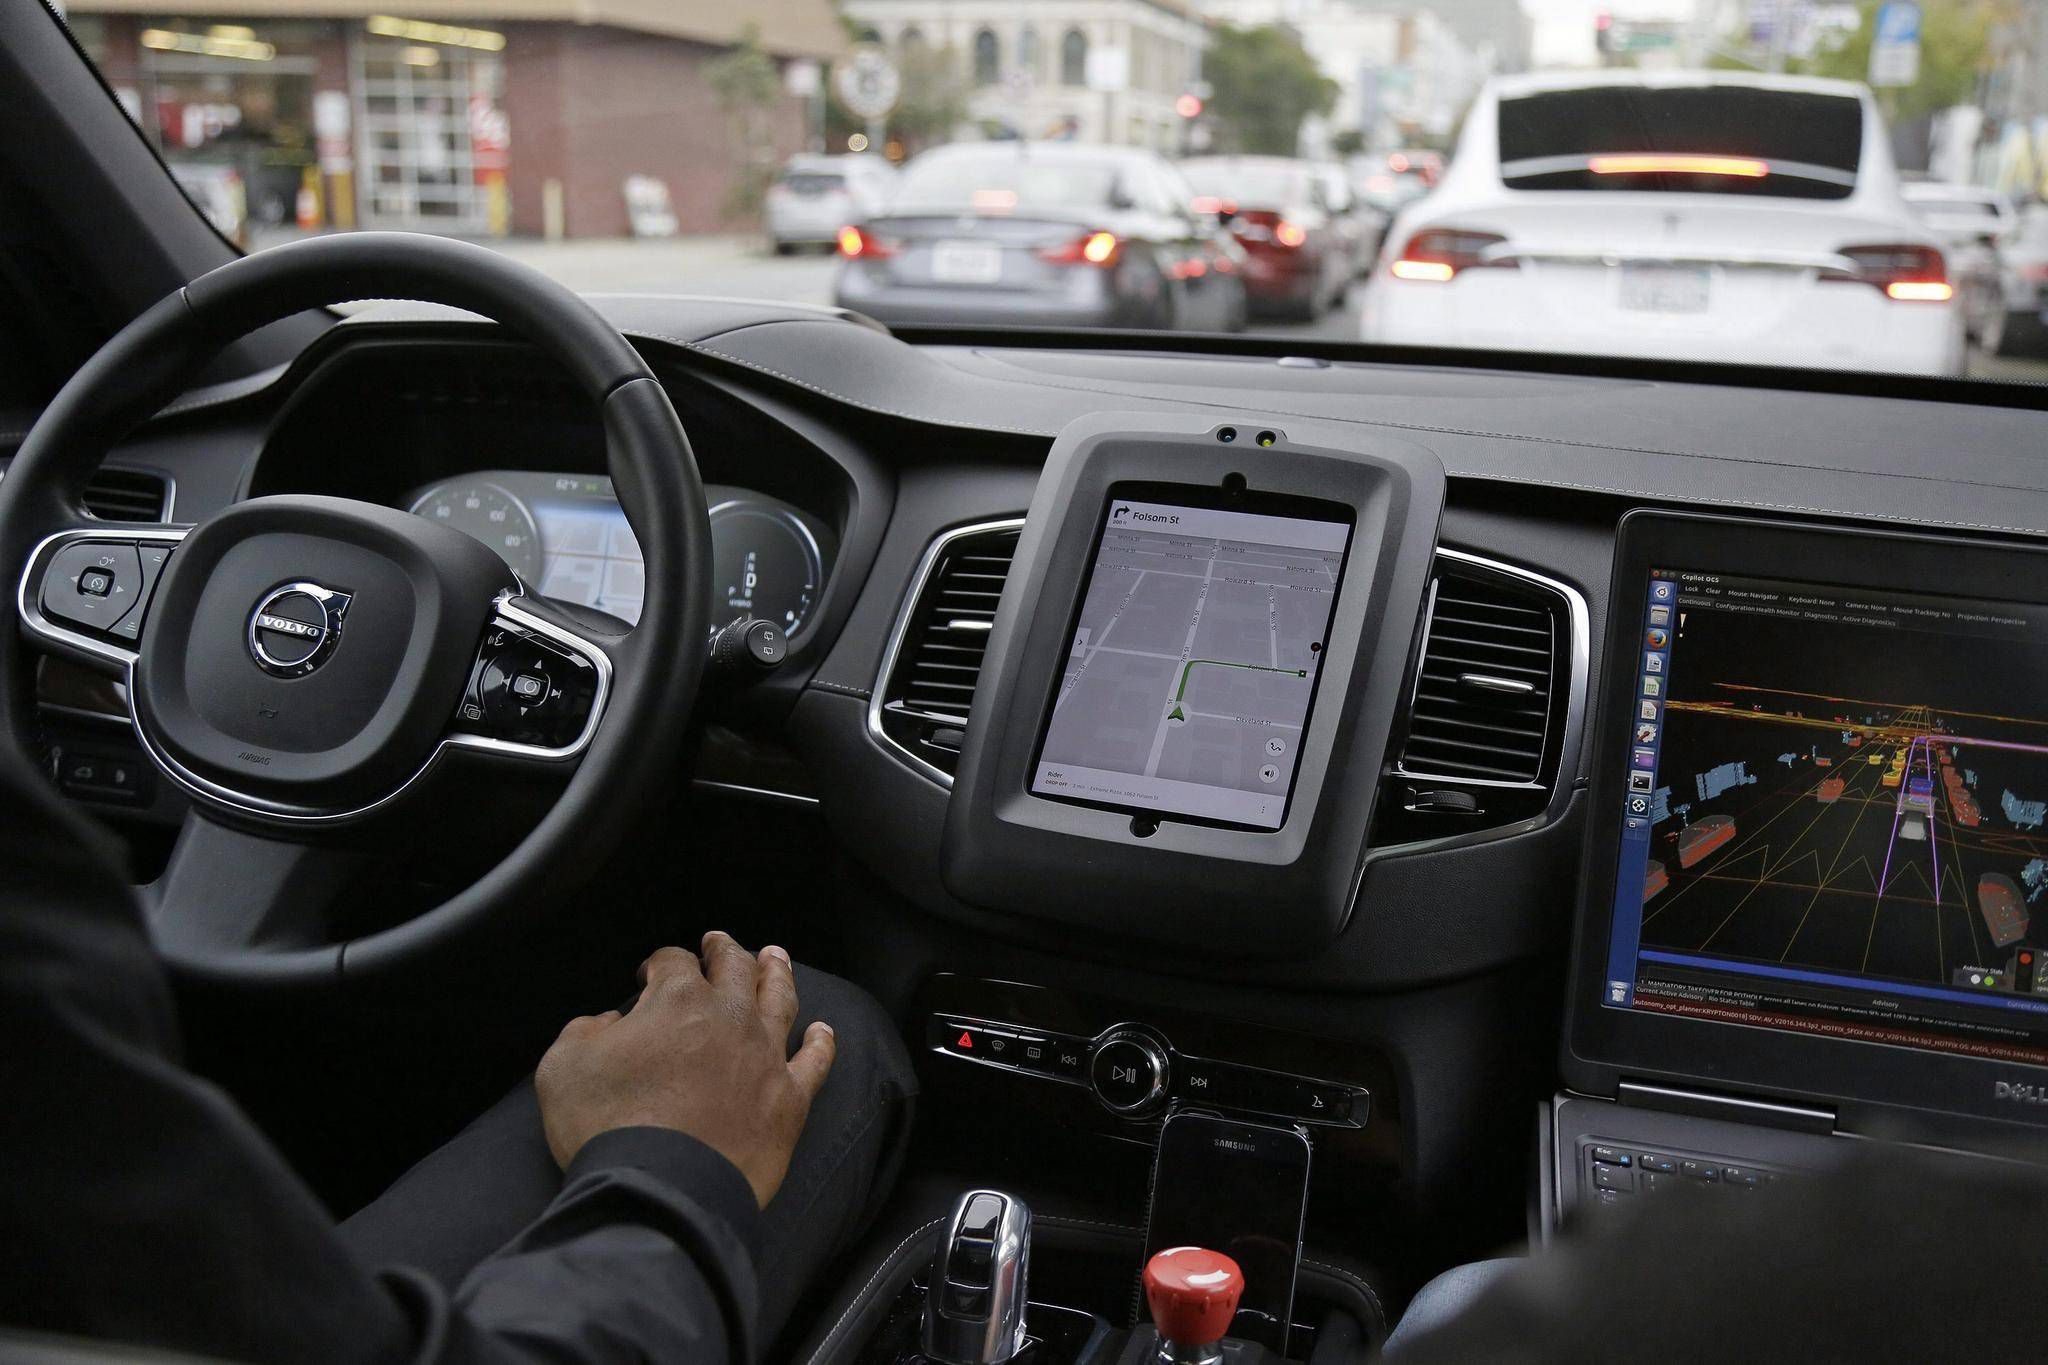 Uber pulls driverless cars off toronto roads after pedestrian uber pulls driverless cars off toronto roads after pedestrian fatality in us the globe and mail biocorpaavc